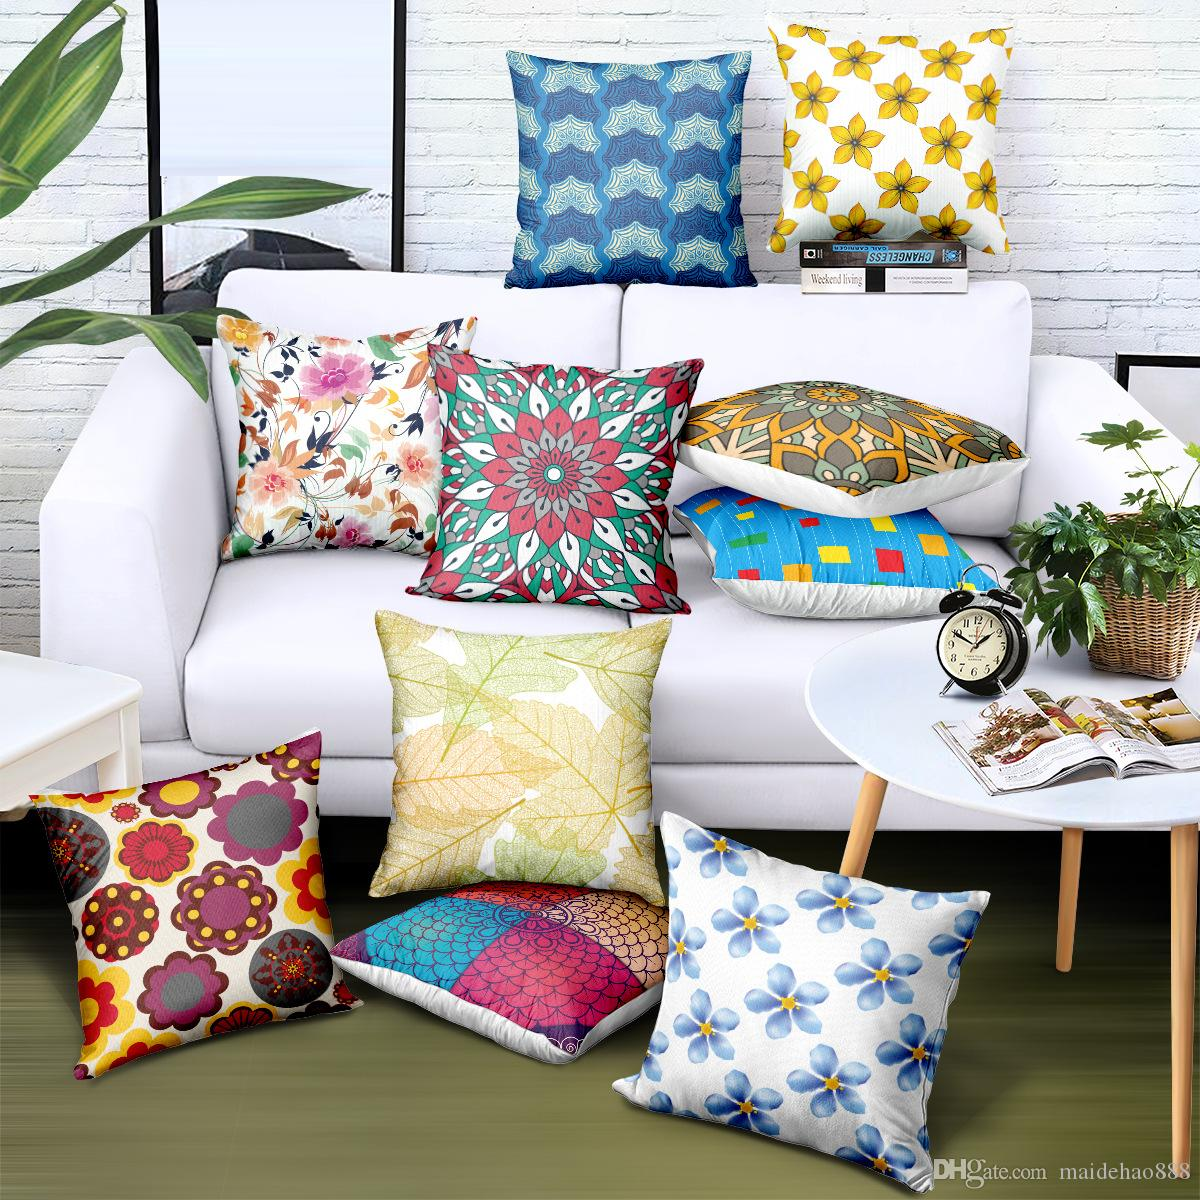 Custom Wholesale Pillow Cover European and American Style Geometric Print Logo Brand Advertising Gift Sofa Chair Cushion Cover Free Design